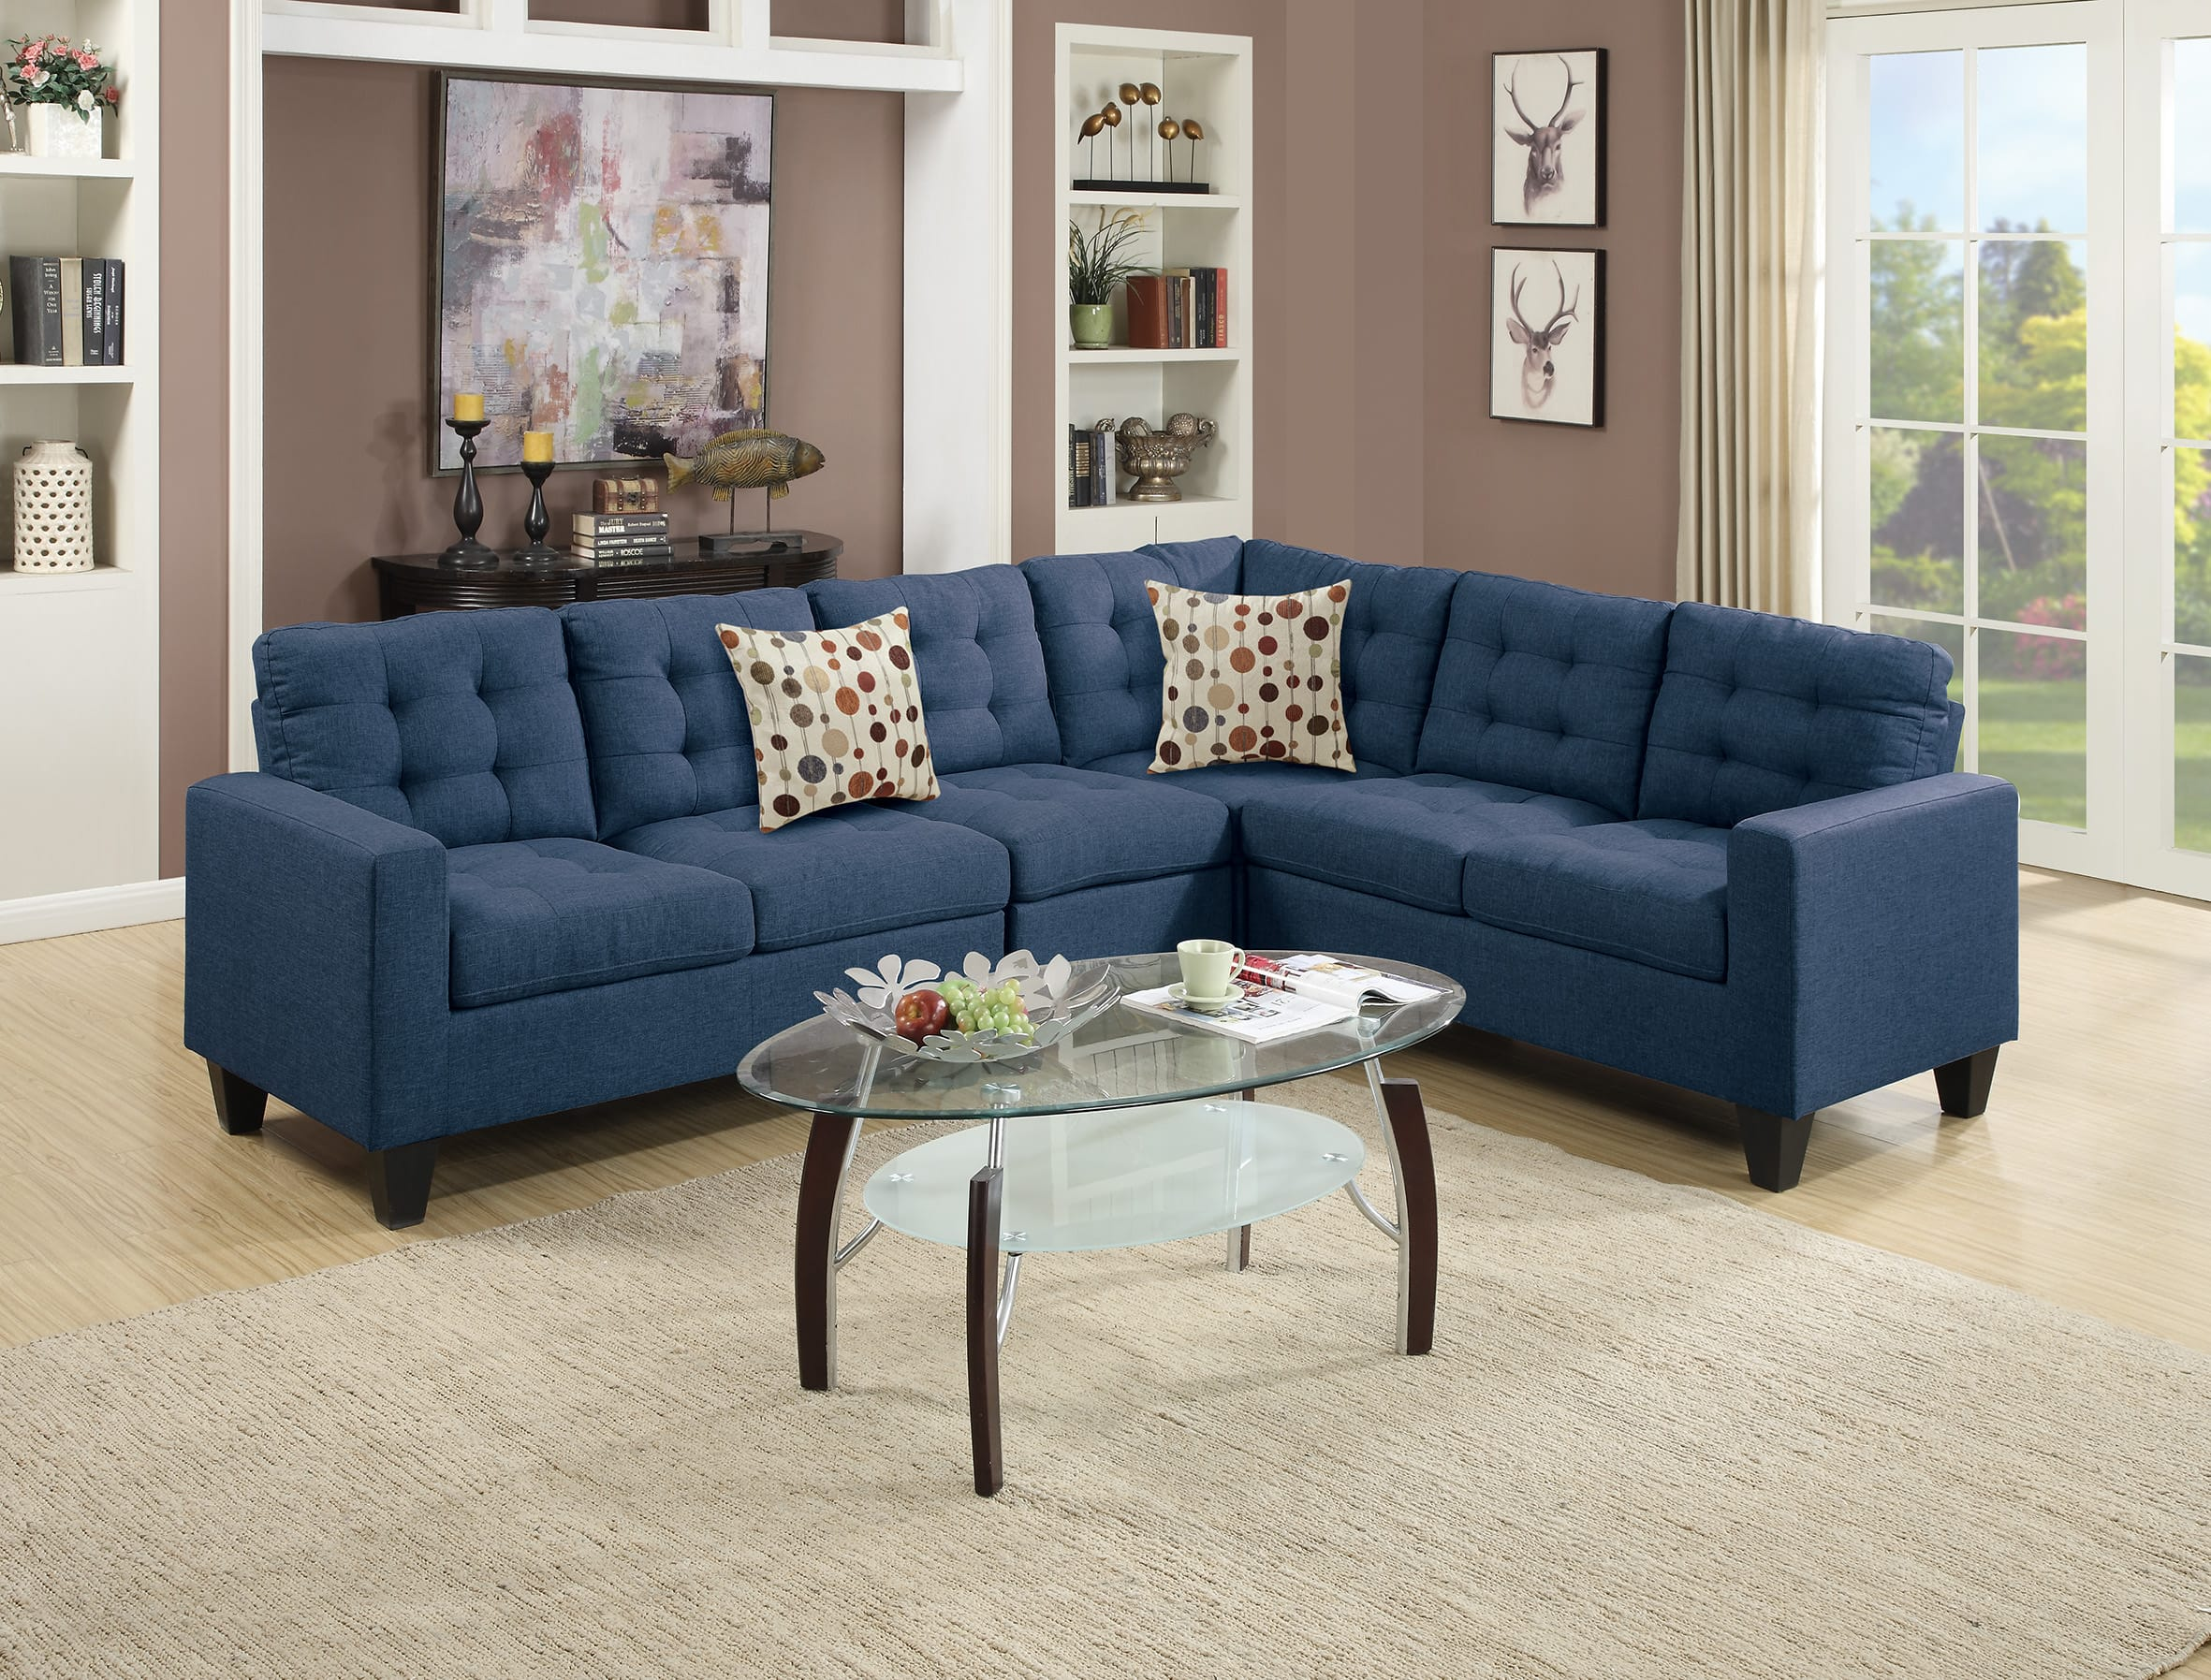 vlv linen luevano com large sectional blue couch sofa sofamania modern tone navy velvet amanda nv products